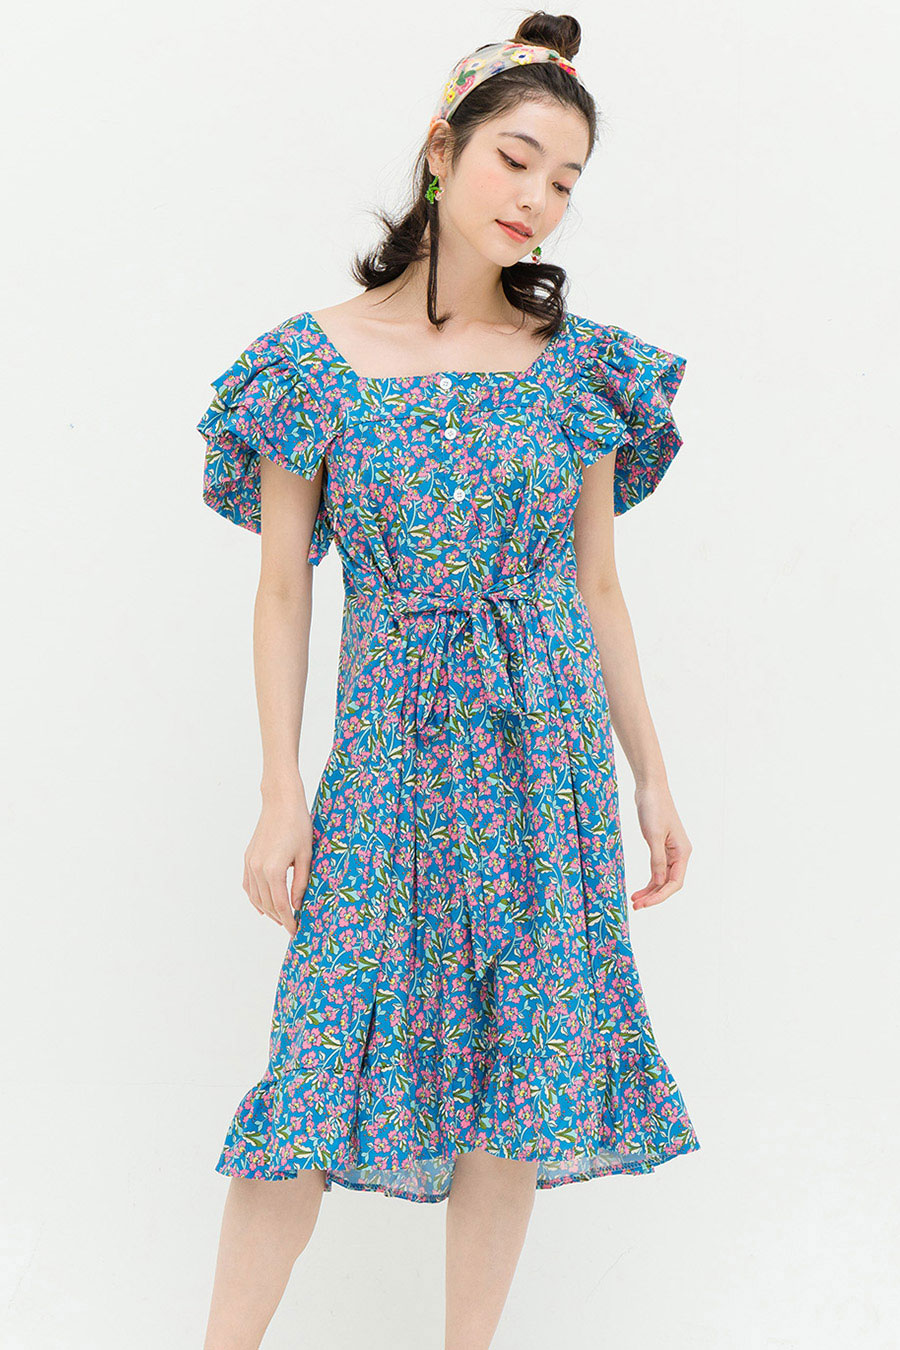 MADISON DRESS - LAGOON FLEUR